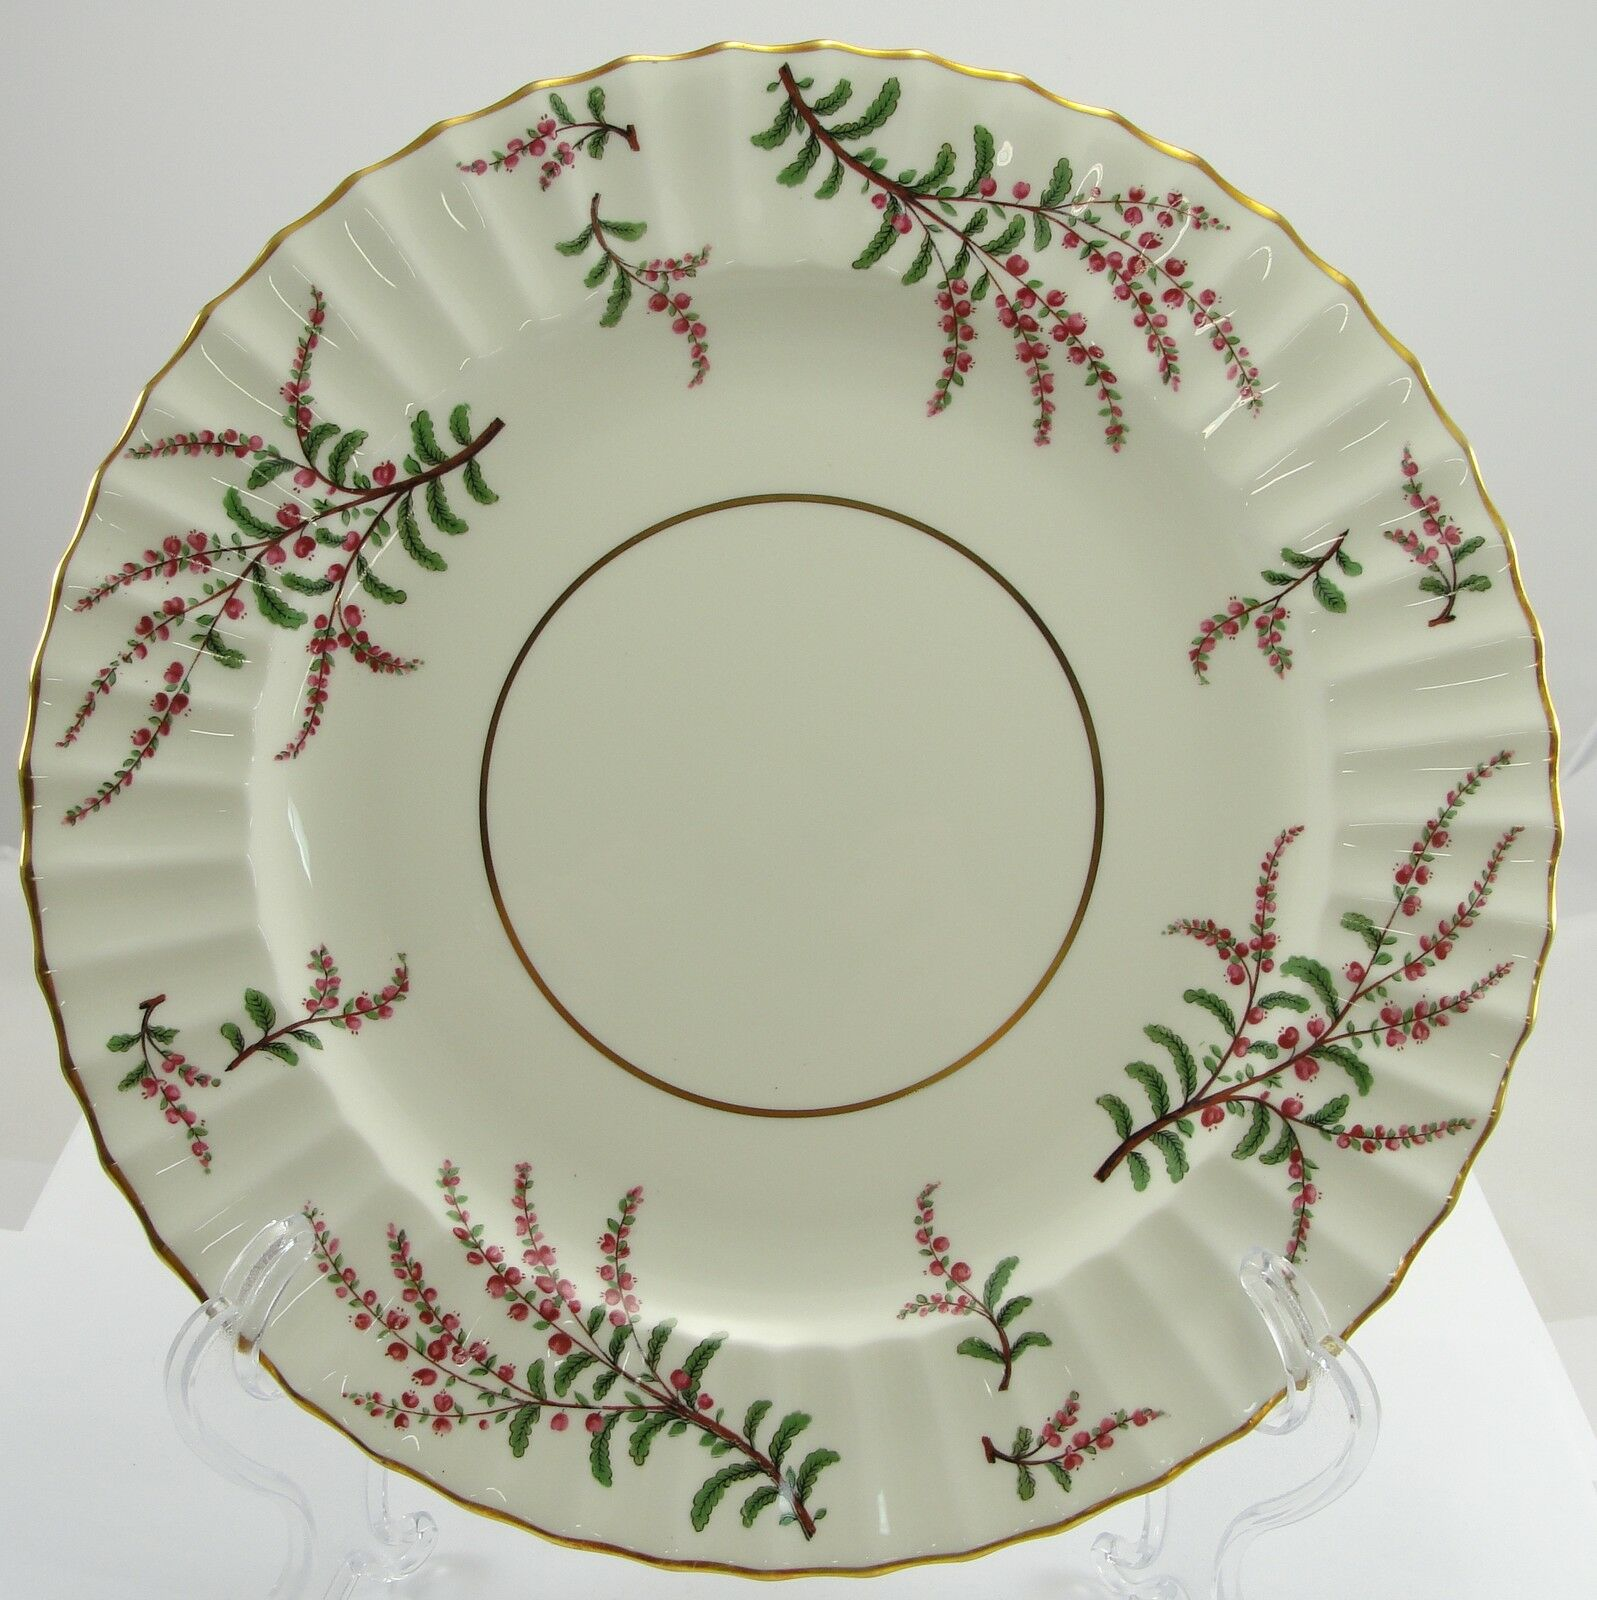 Royal Worcester Dunrobin Bone China  England Round Dinner Plate 10-1/2 Inches